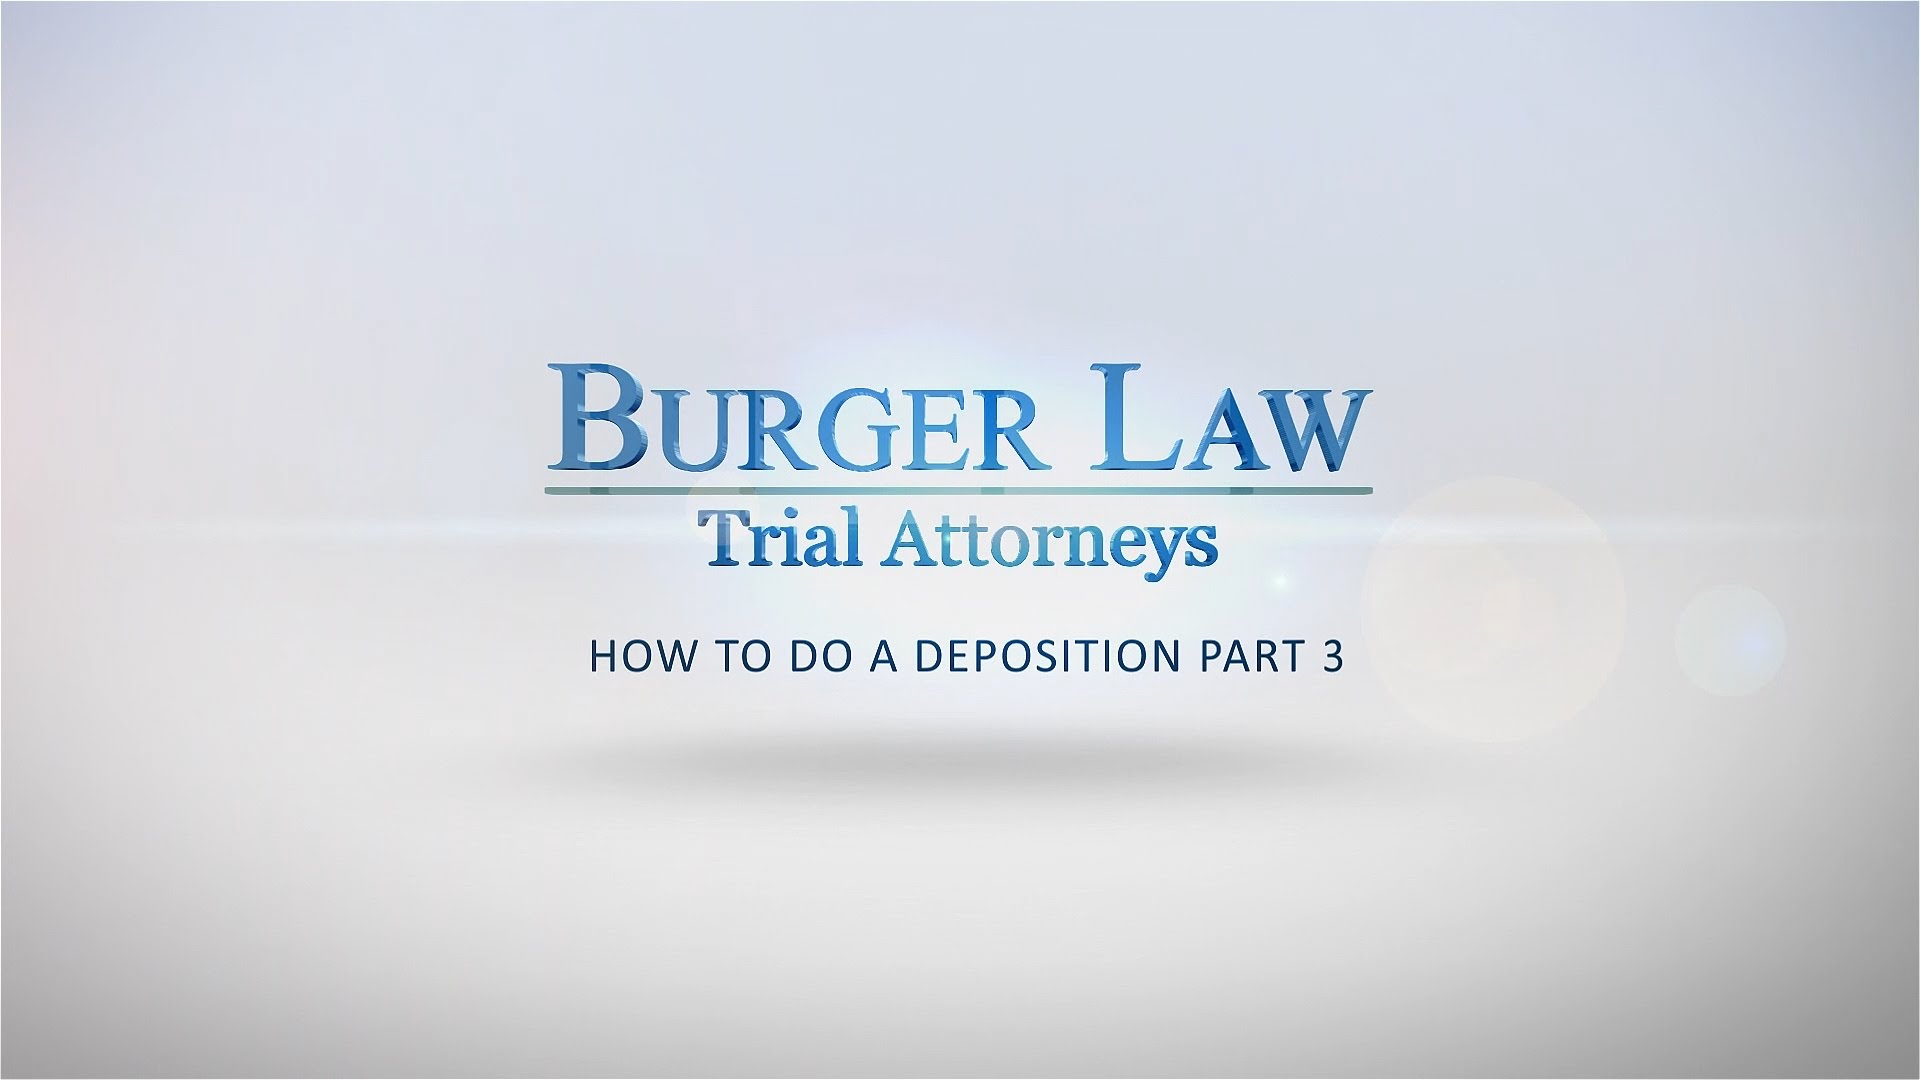 Deposition Preparation Pt 3   Personal Injury Lawyers in St Louis, MO - BurgerLaw.com